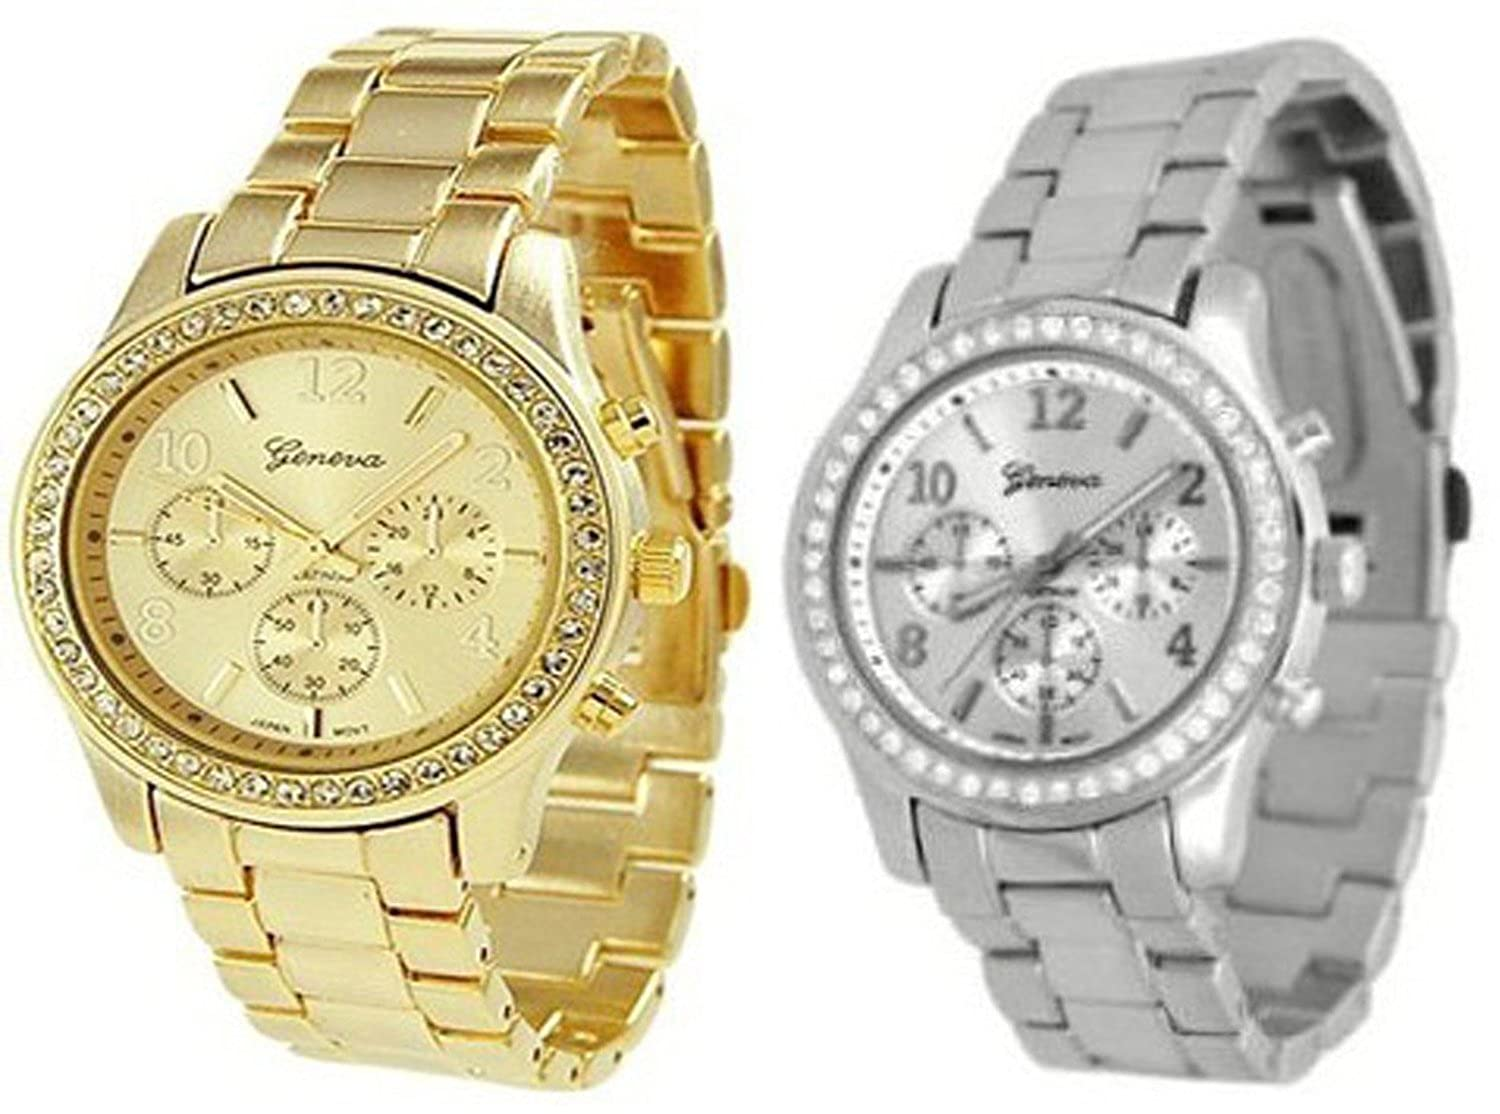 boyfriend him trade new in see watches what fits watch your trendiest the time of news to